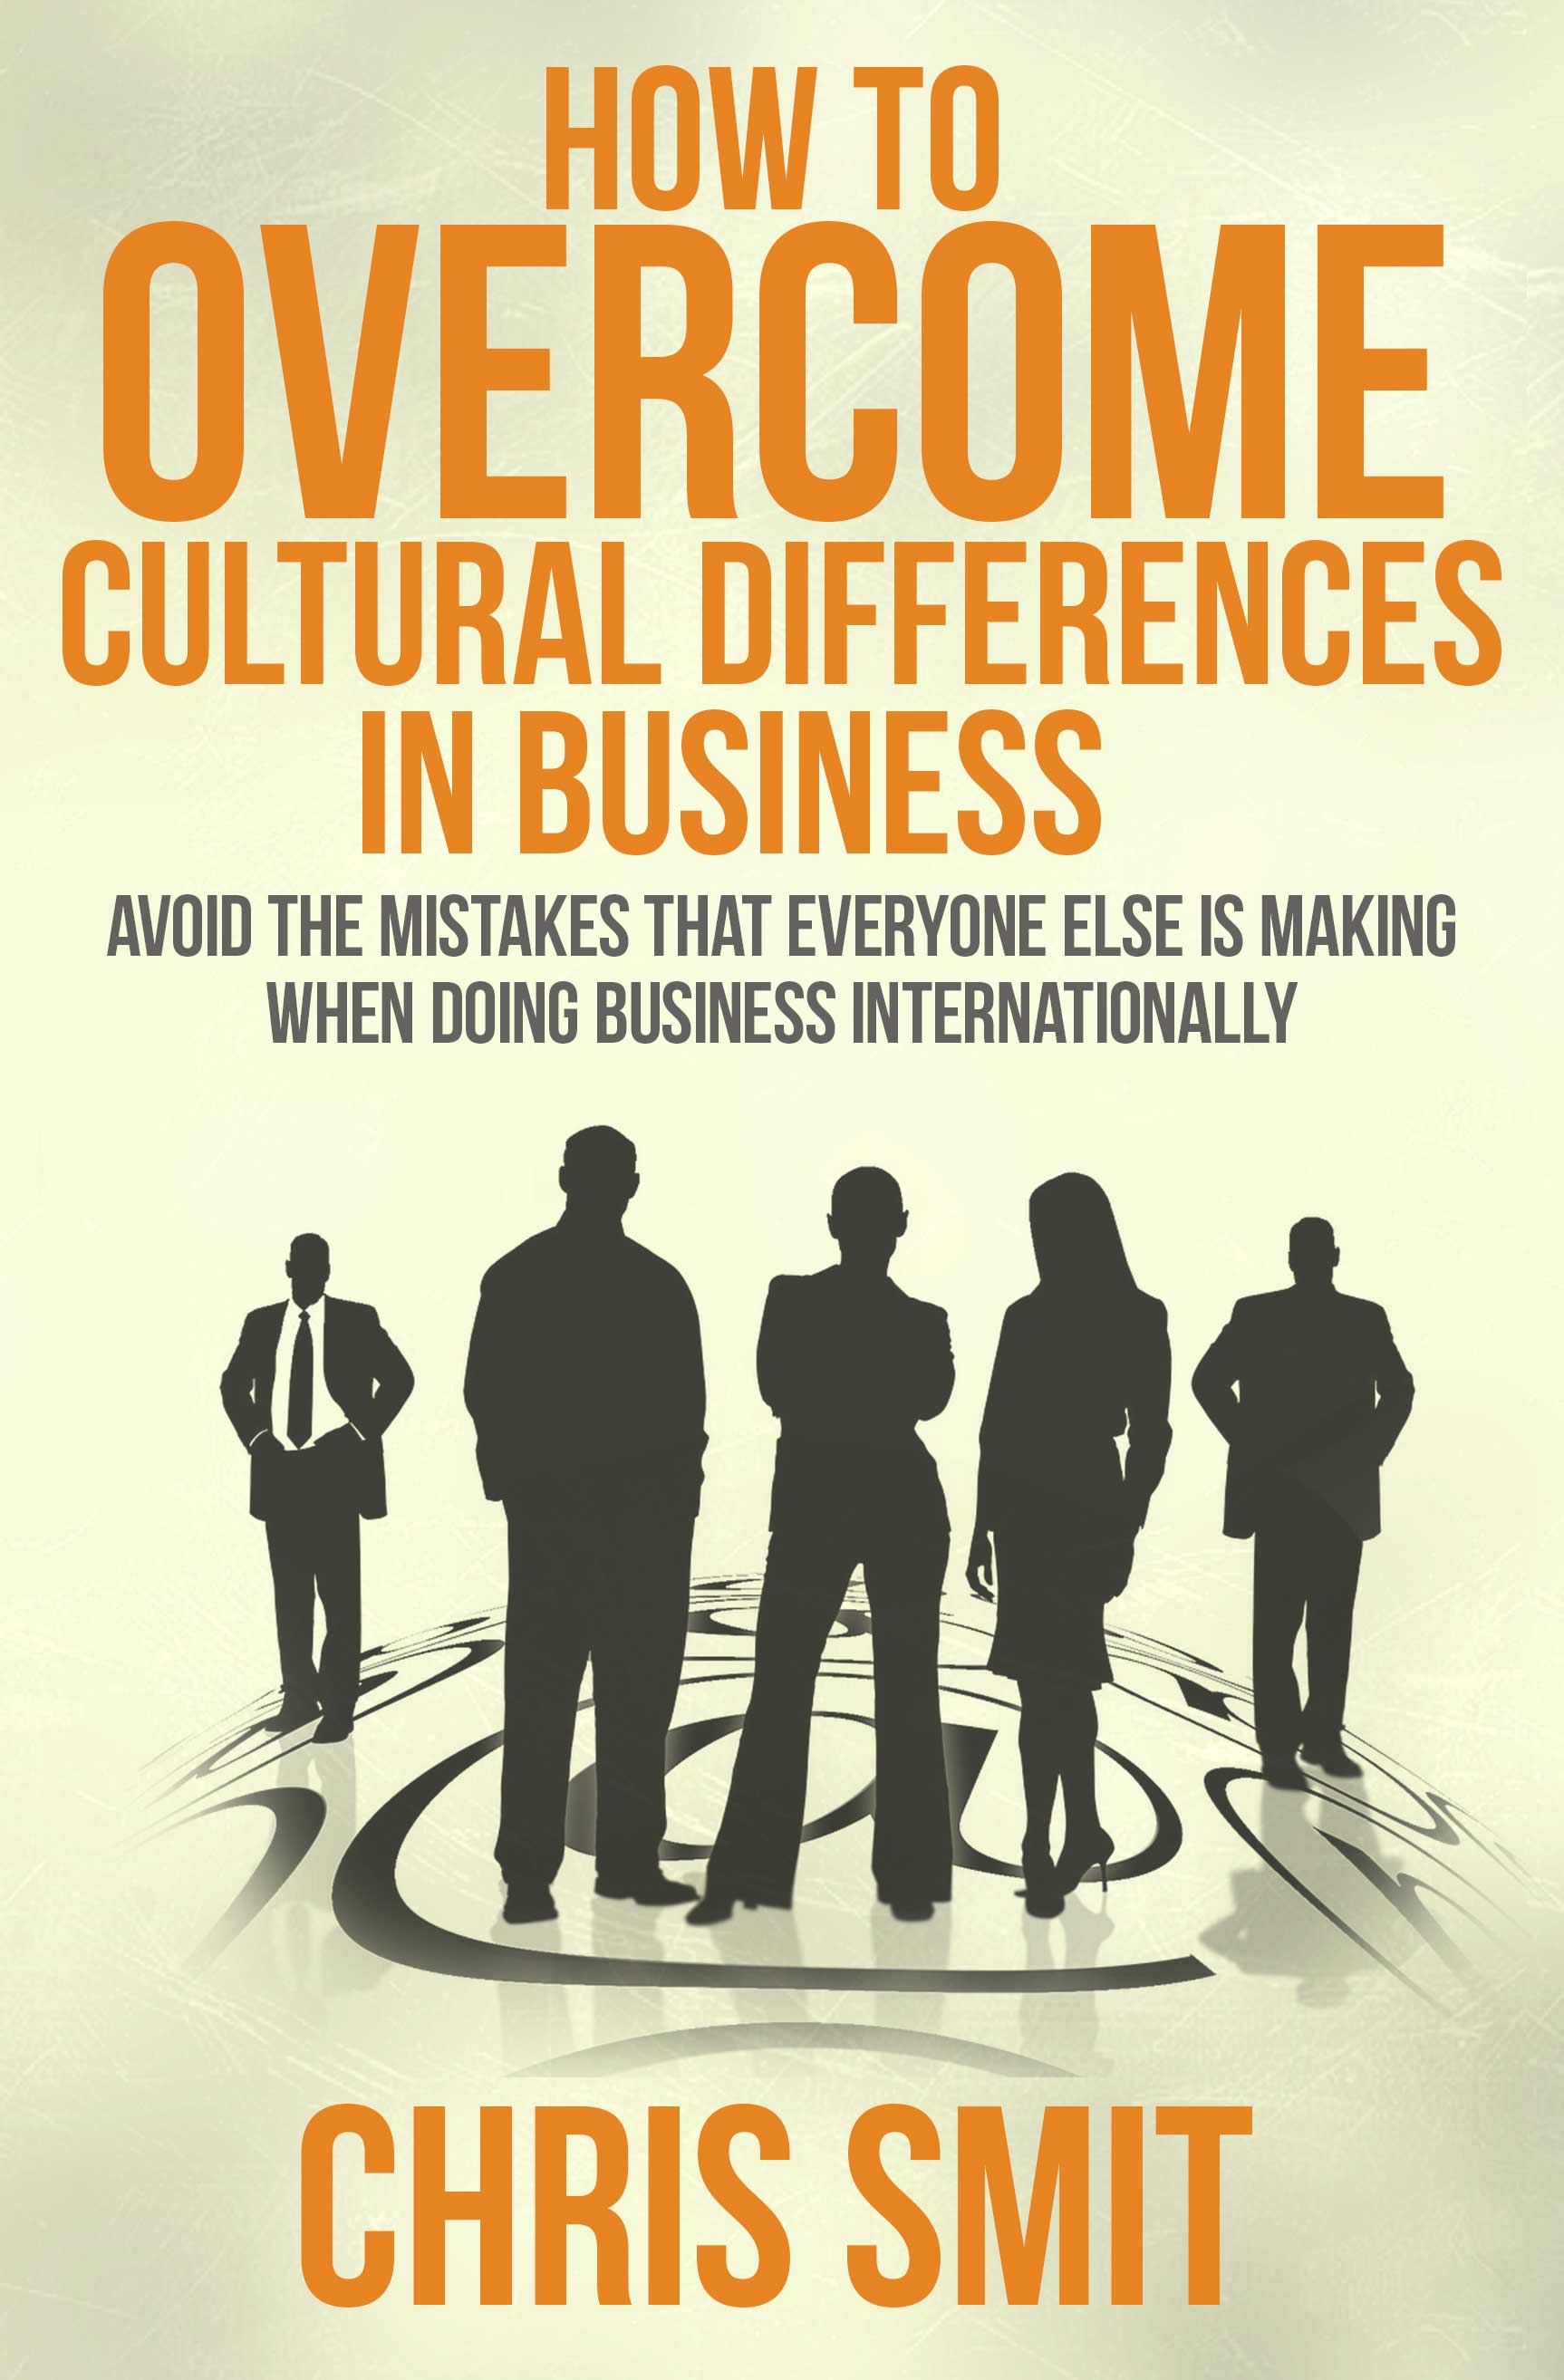 Overcome cultural differences in business